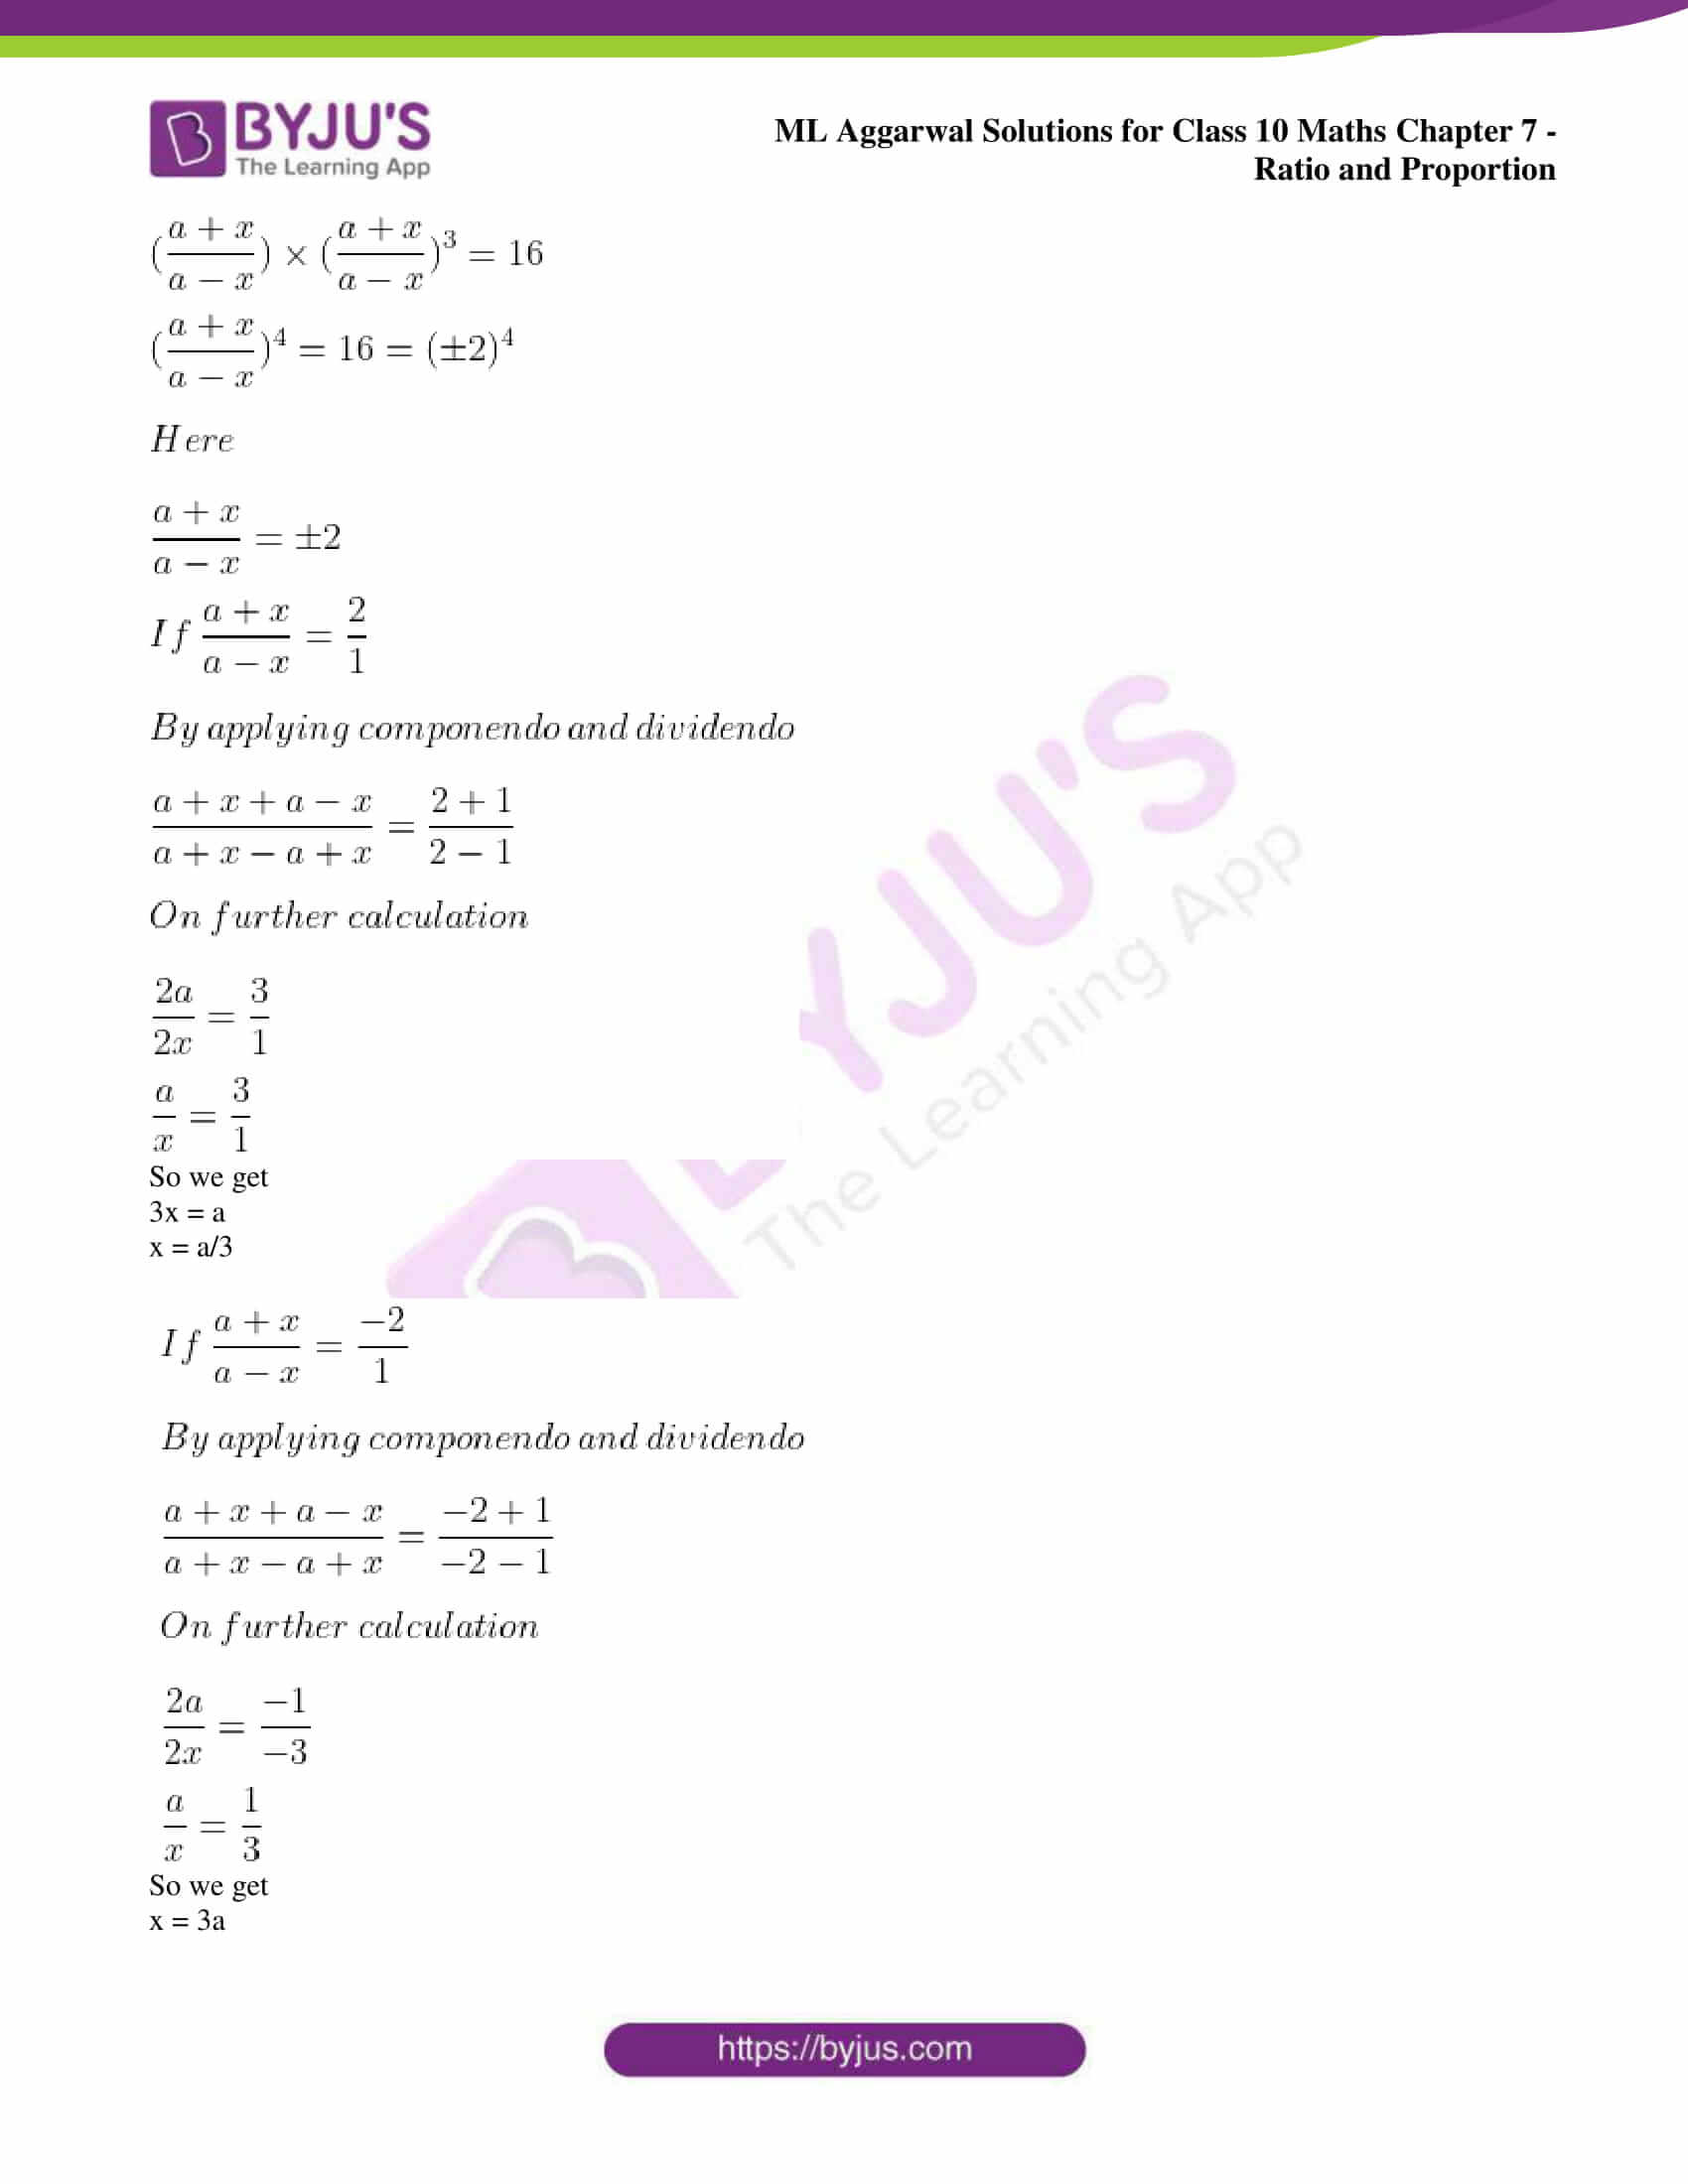 ml aggarwal solutions for class 10 maths chapter 7 62